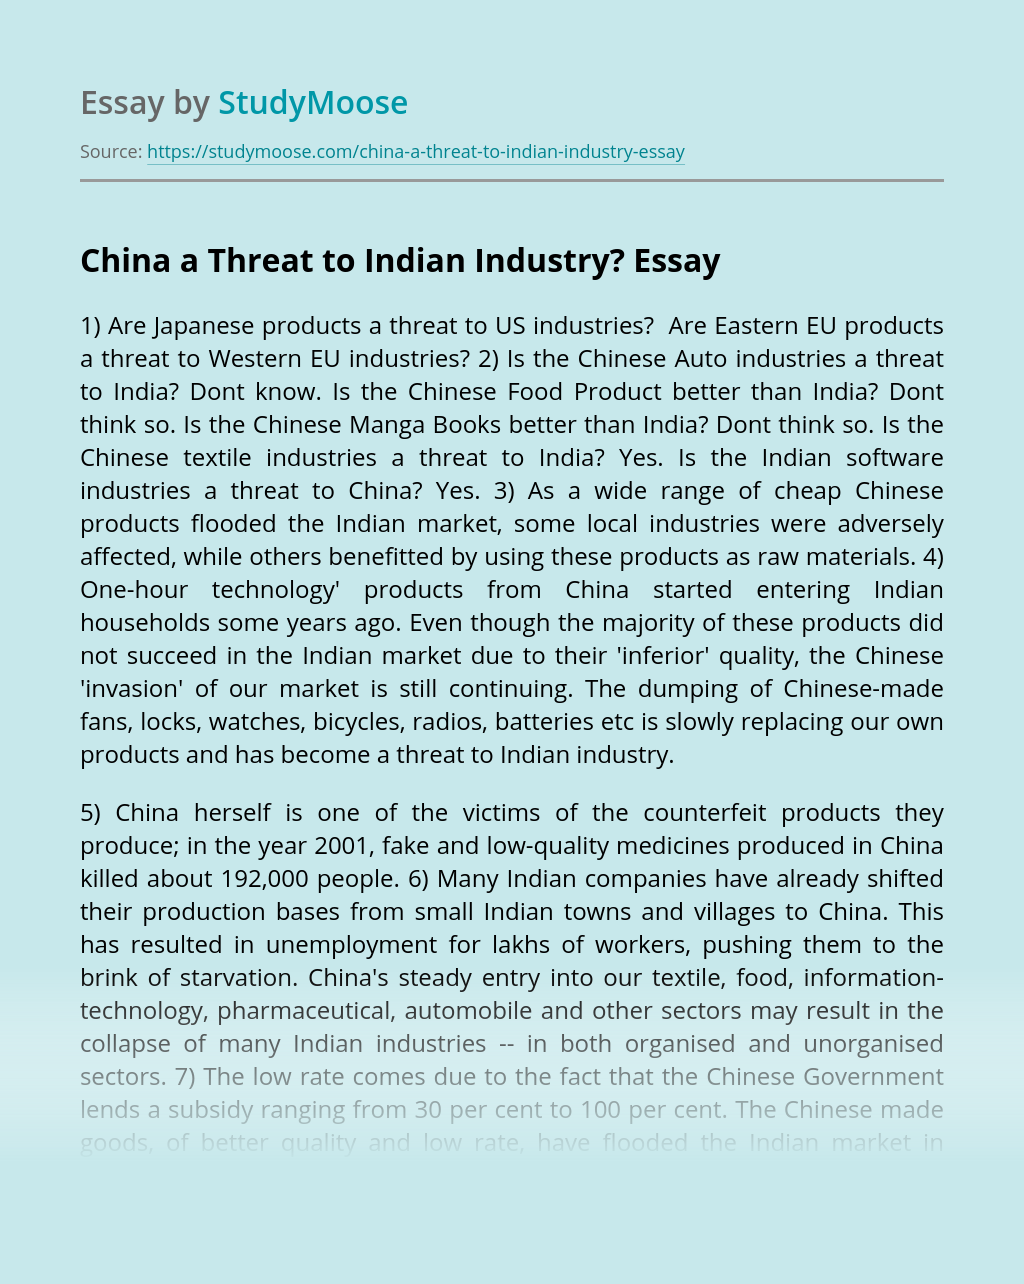 China a Threat to Indian Industry?